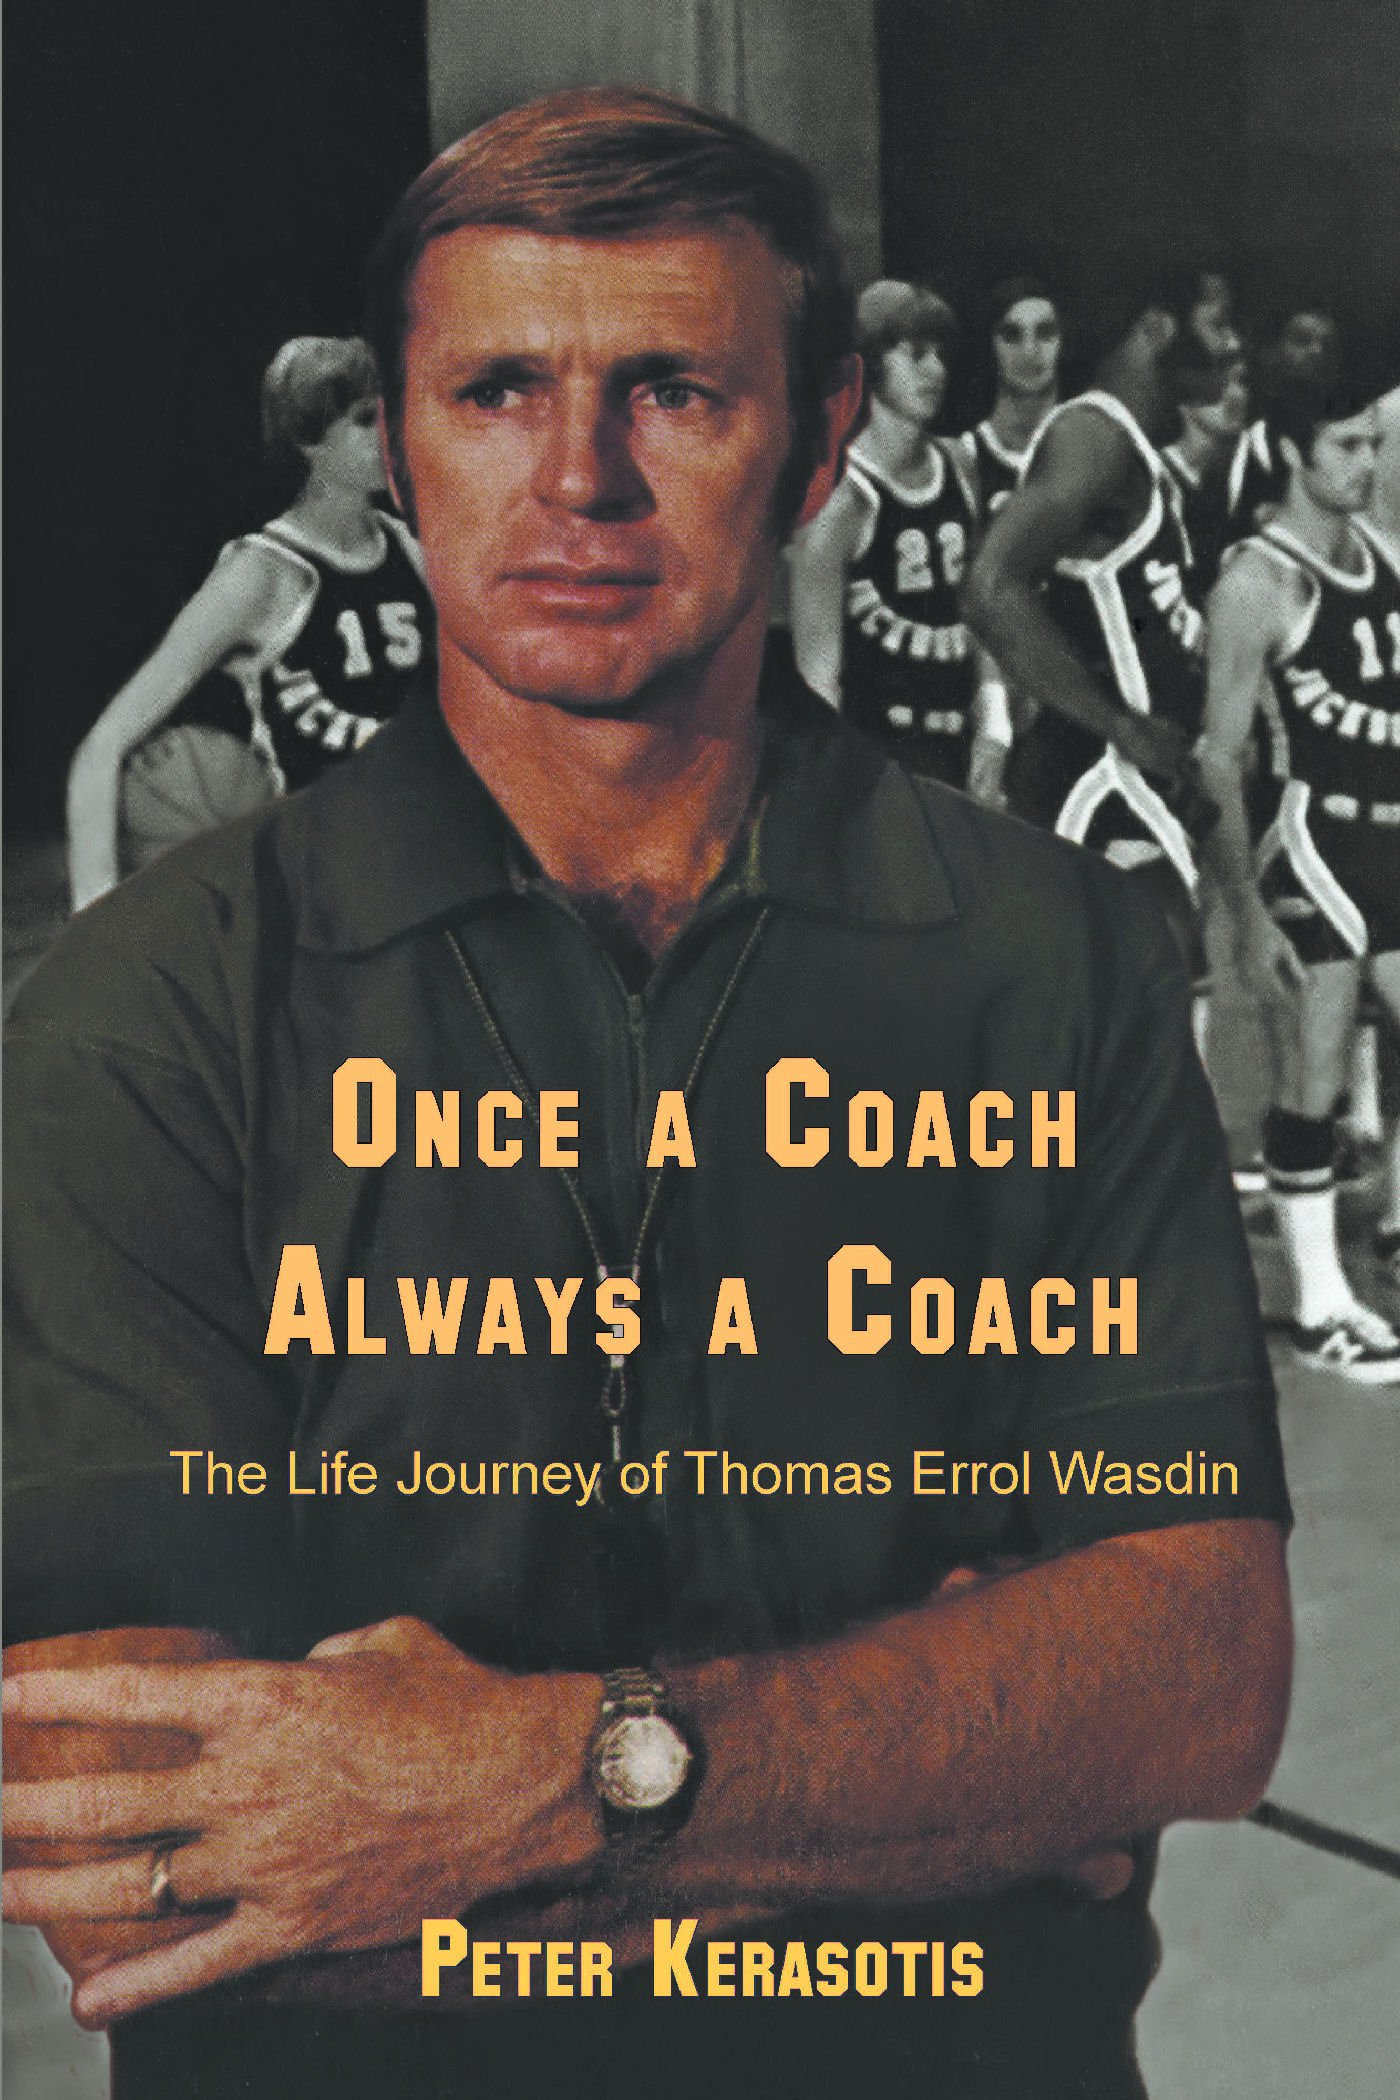 Image OfOnce A Coach, Always A Coach: The Life Journey Of Thomas Errol Wasdin (English Edition)